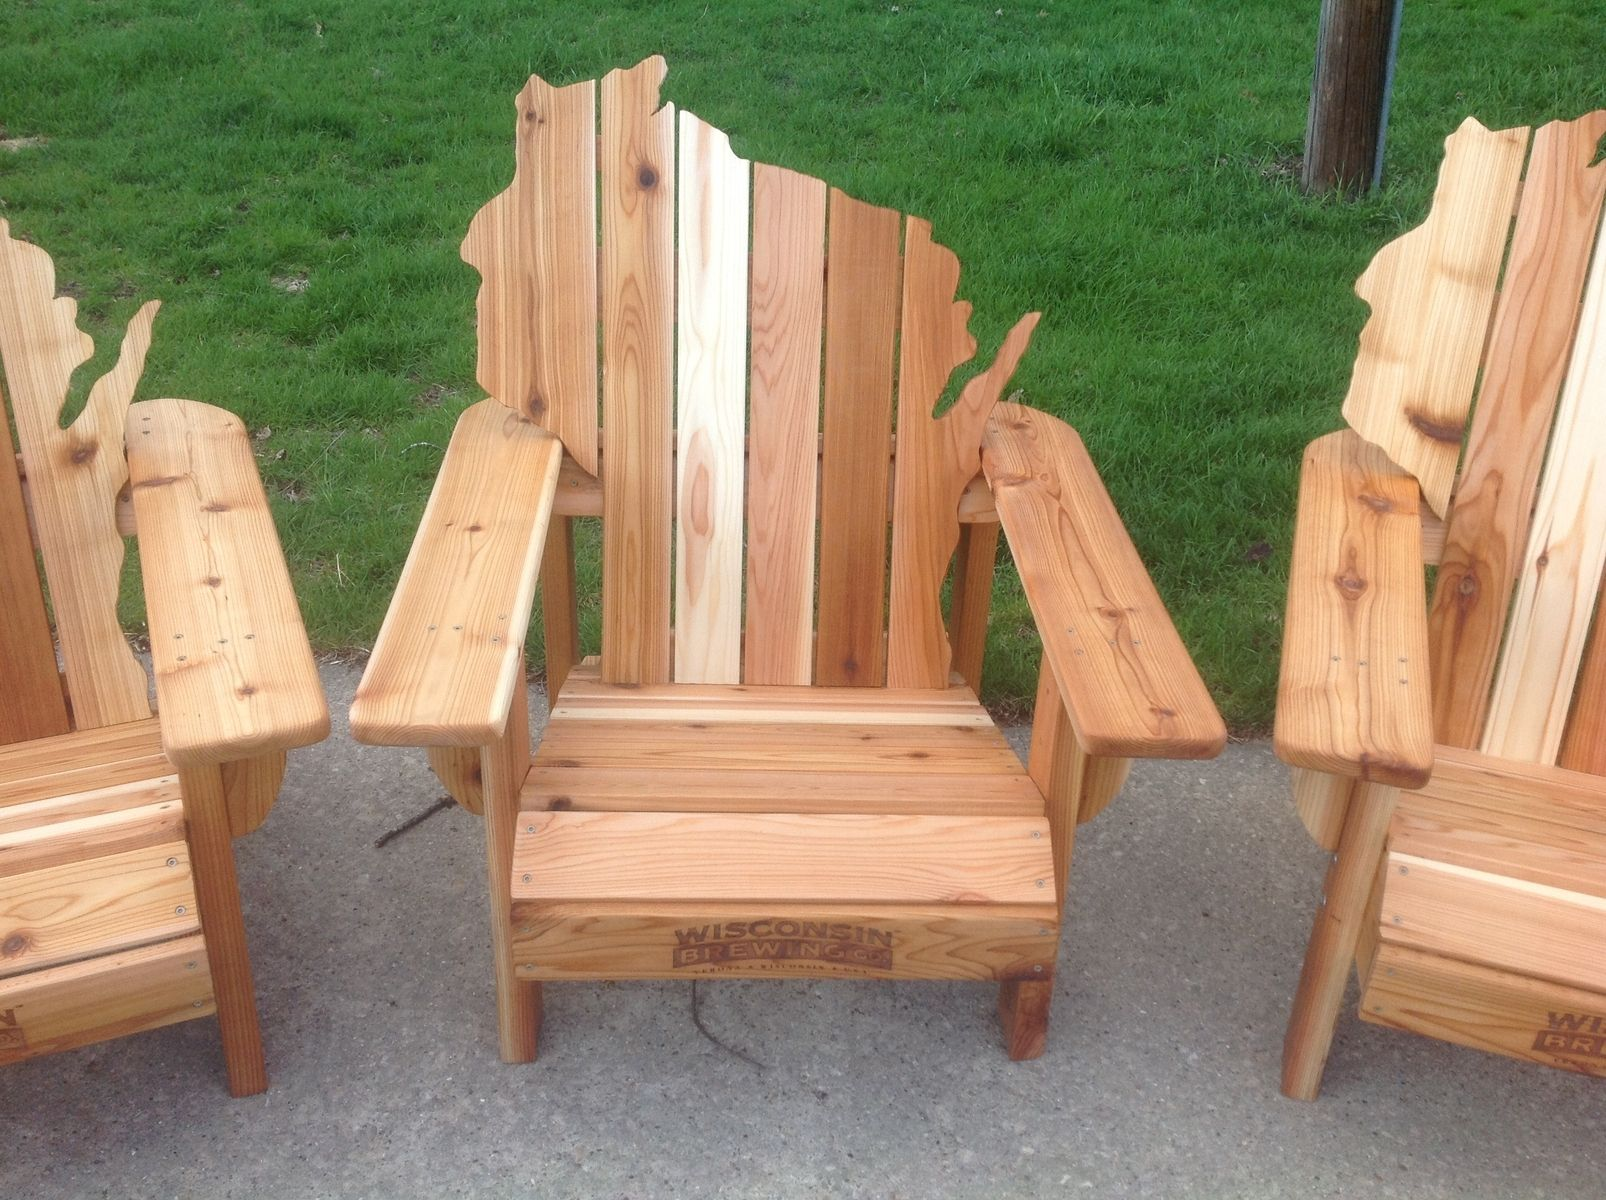 Custom Made Cedar Adirondack Wisconsin Chairs With Personalized Laser ...